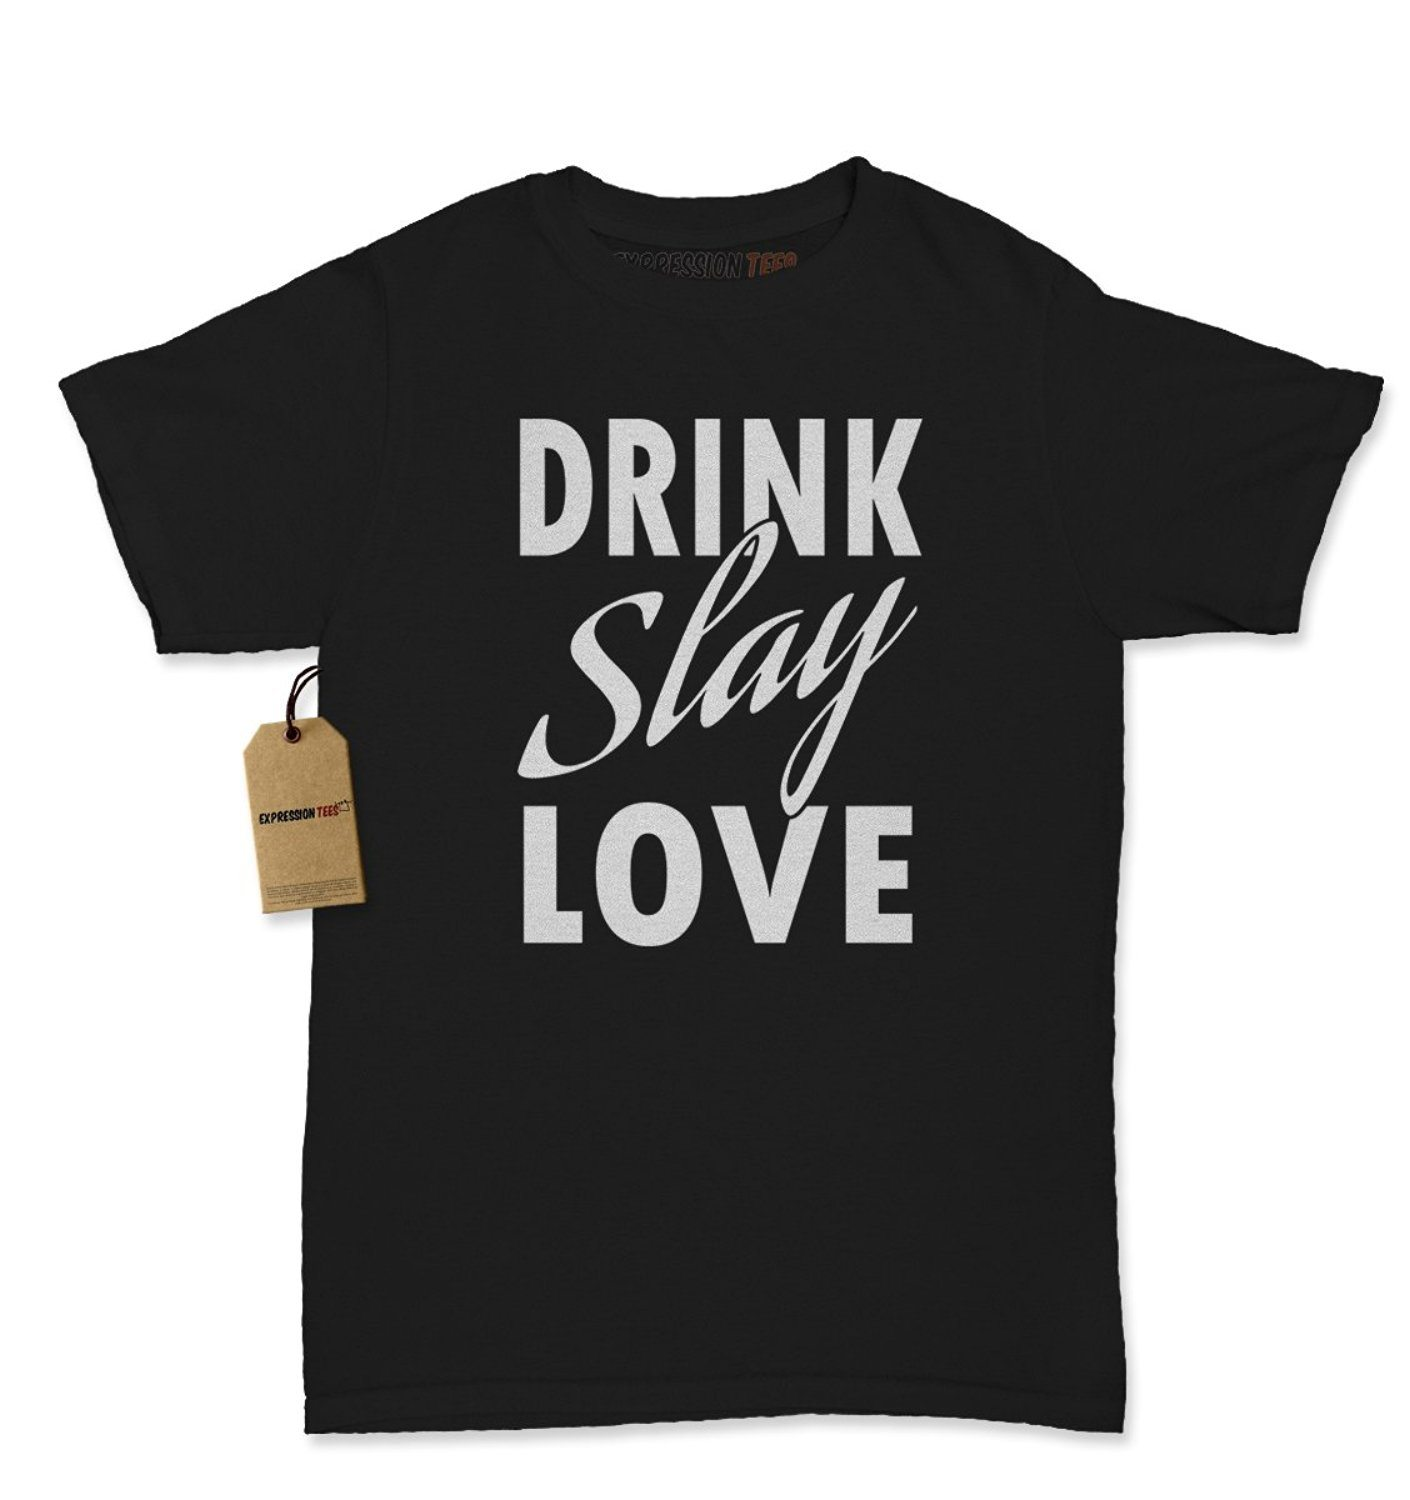 Expression Tees Drink Slay Love Womens